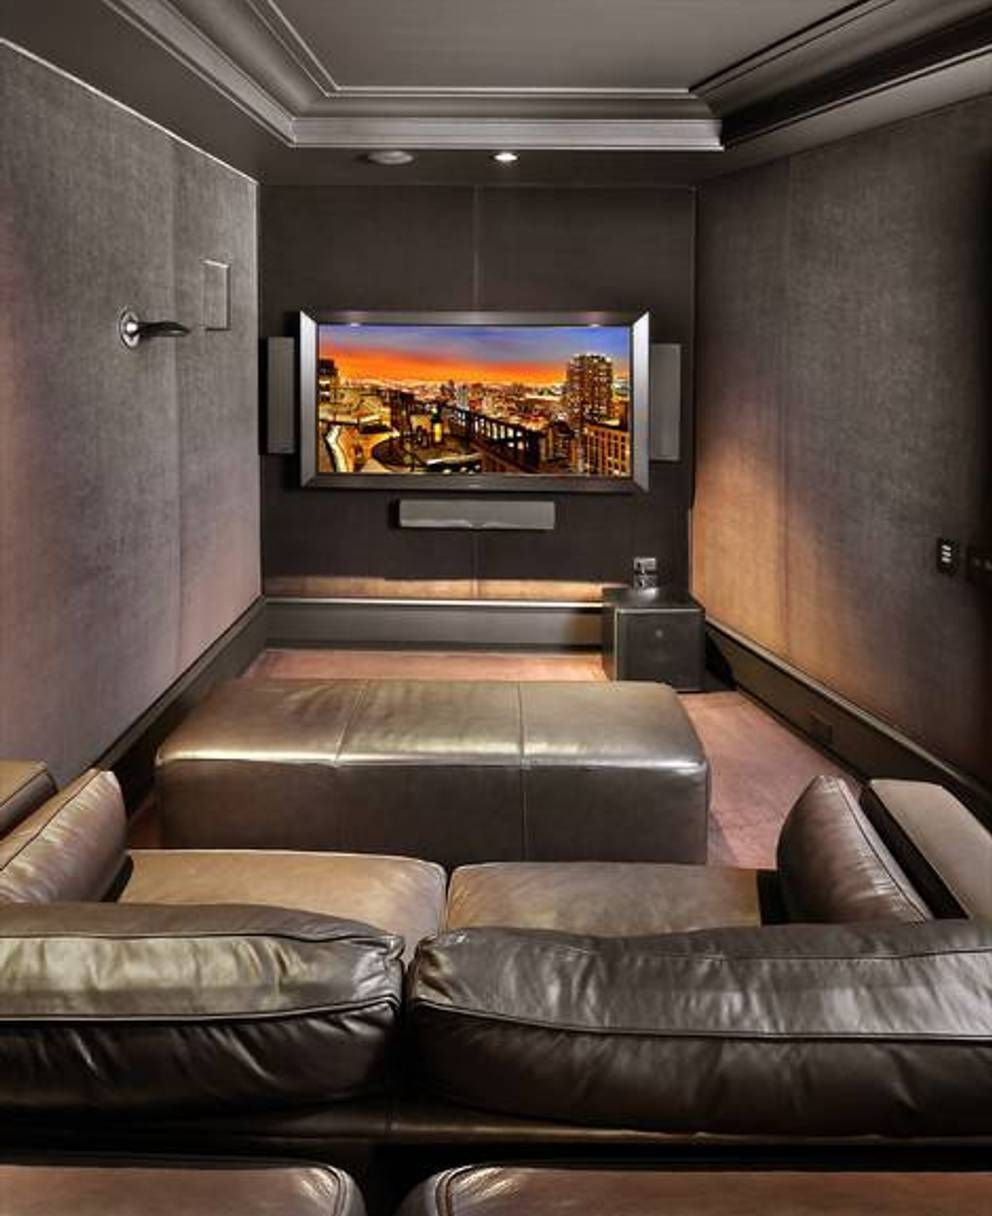 Home Theater Seat Design Ideas: Home Design And Decor , Small Home Theater Room Ideas